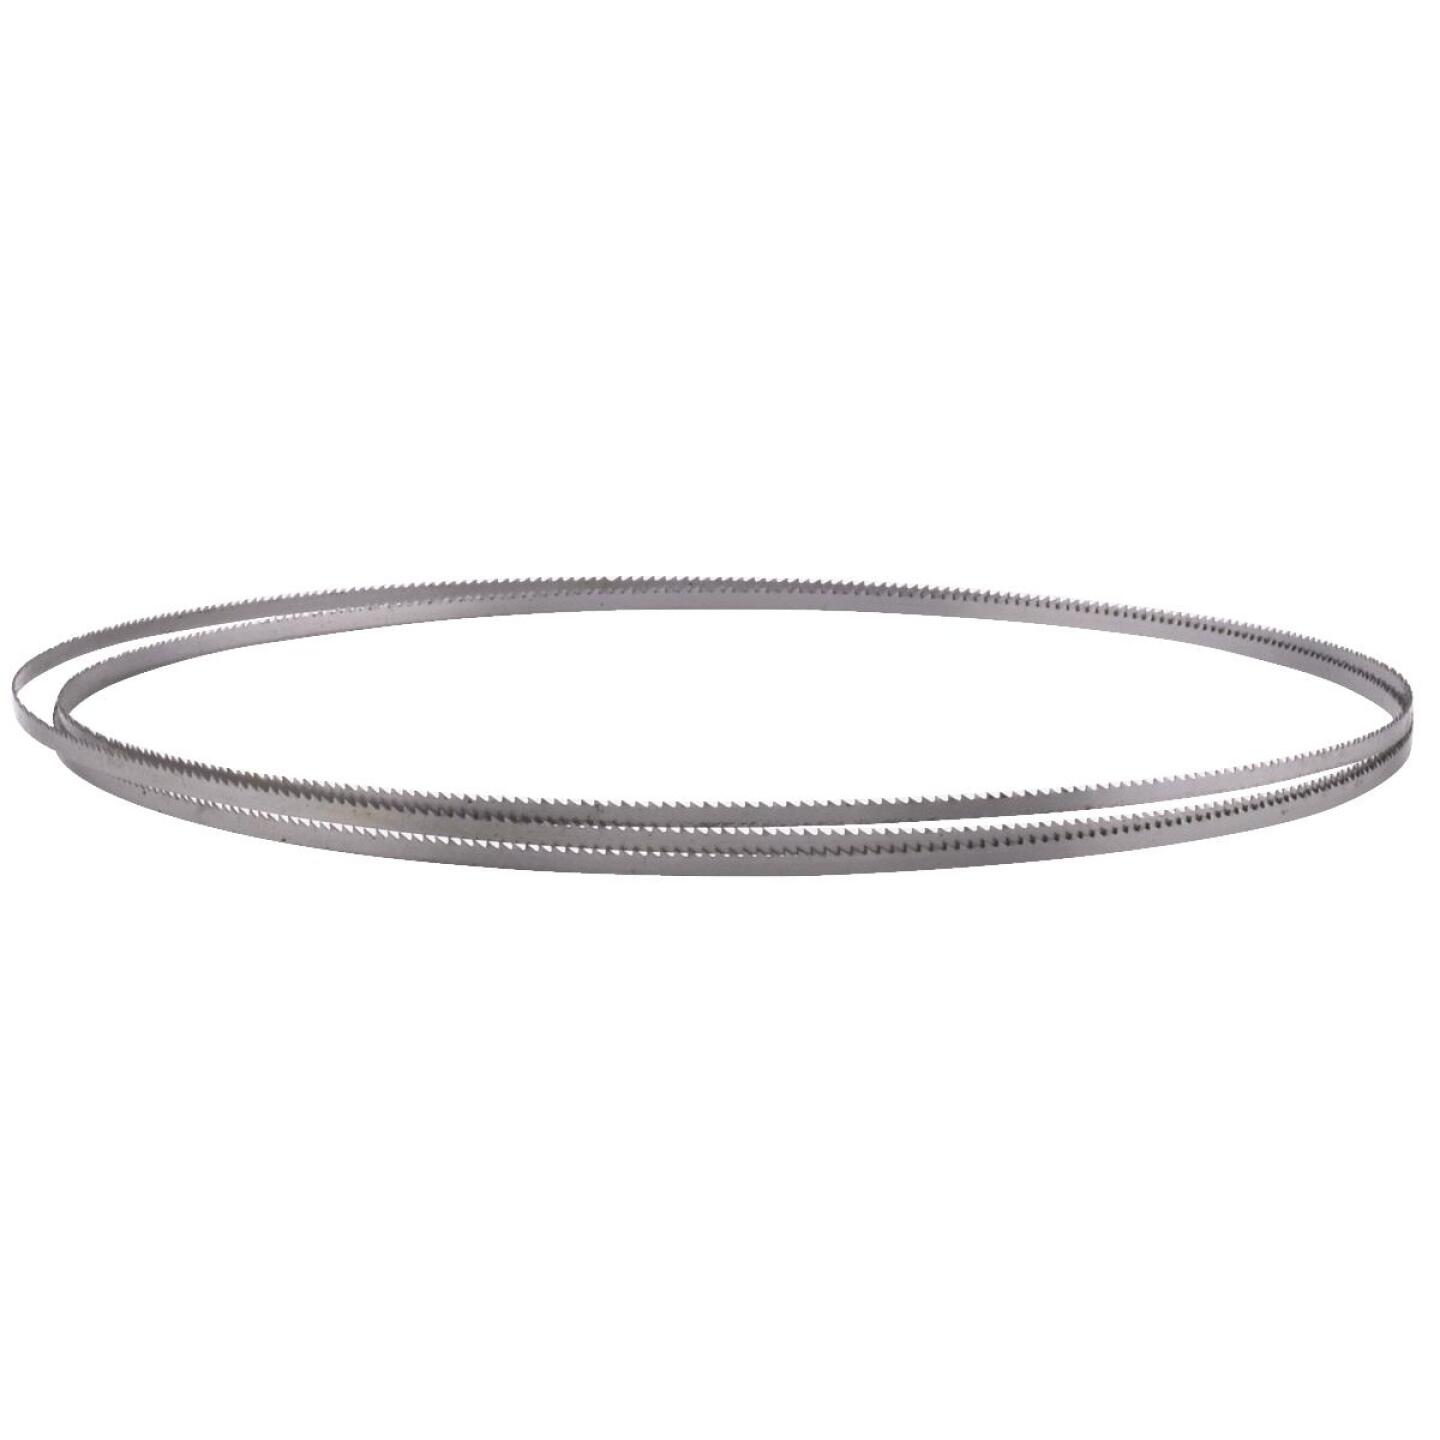 Olson 93-1/2 In. x 1/8 In. 14 TPI Regular Flex Back Band Saw Blade Image 2